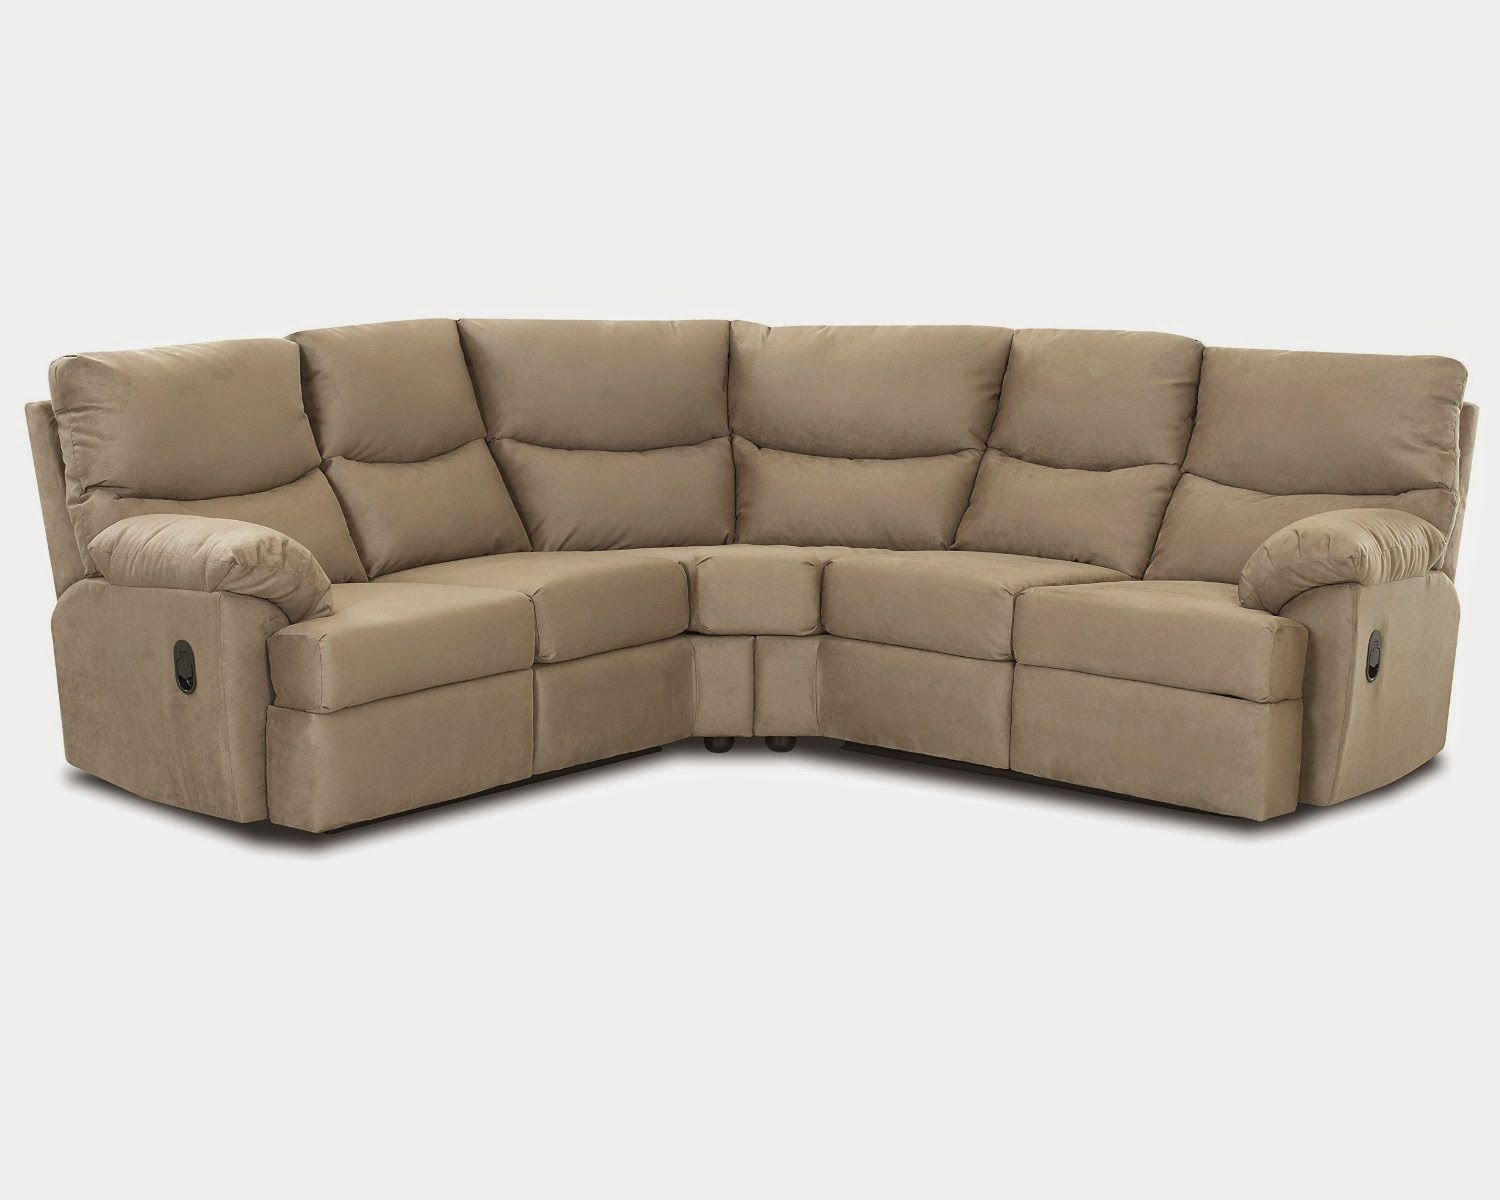 cool sofa mart sectional design-Awesome sofa Mart Sectional Photo